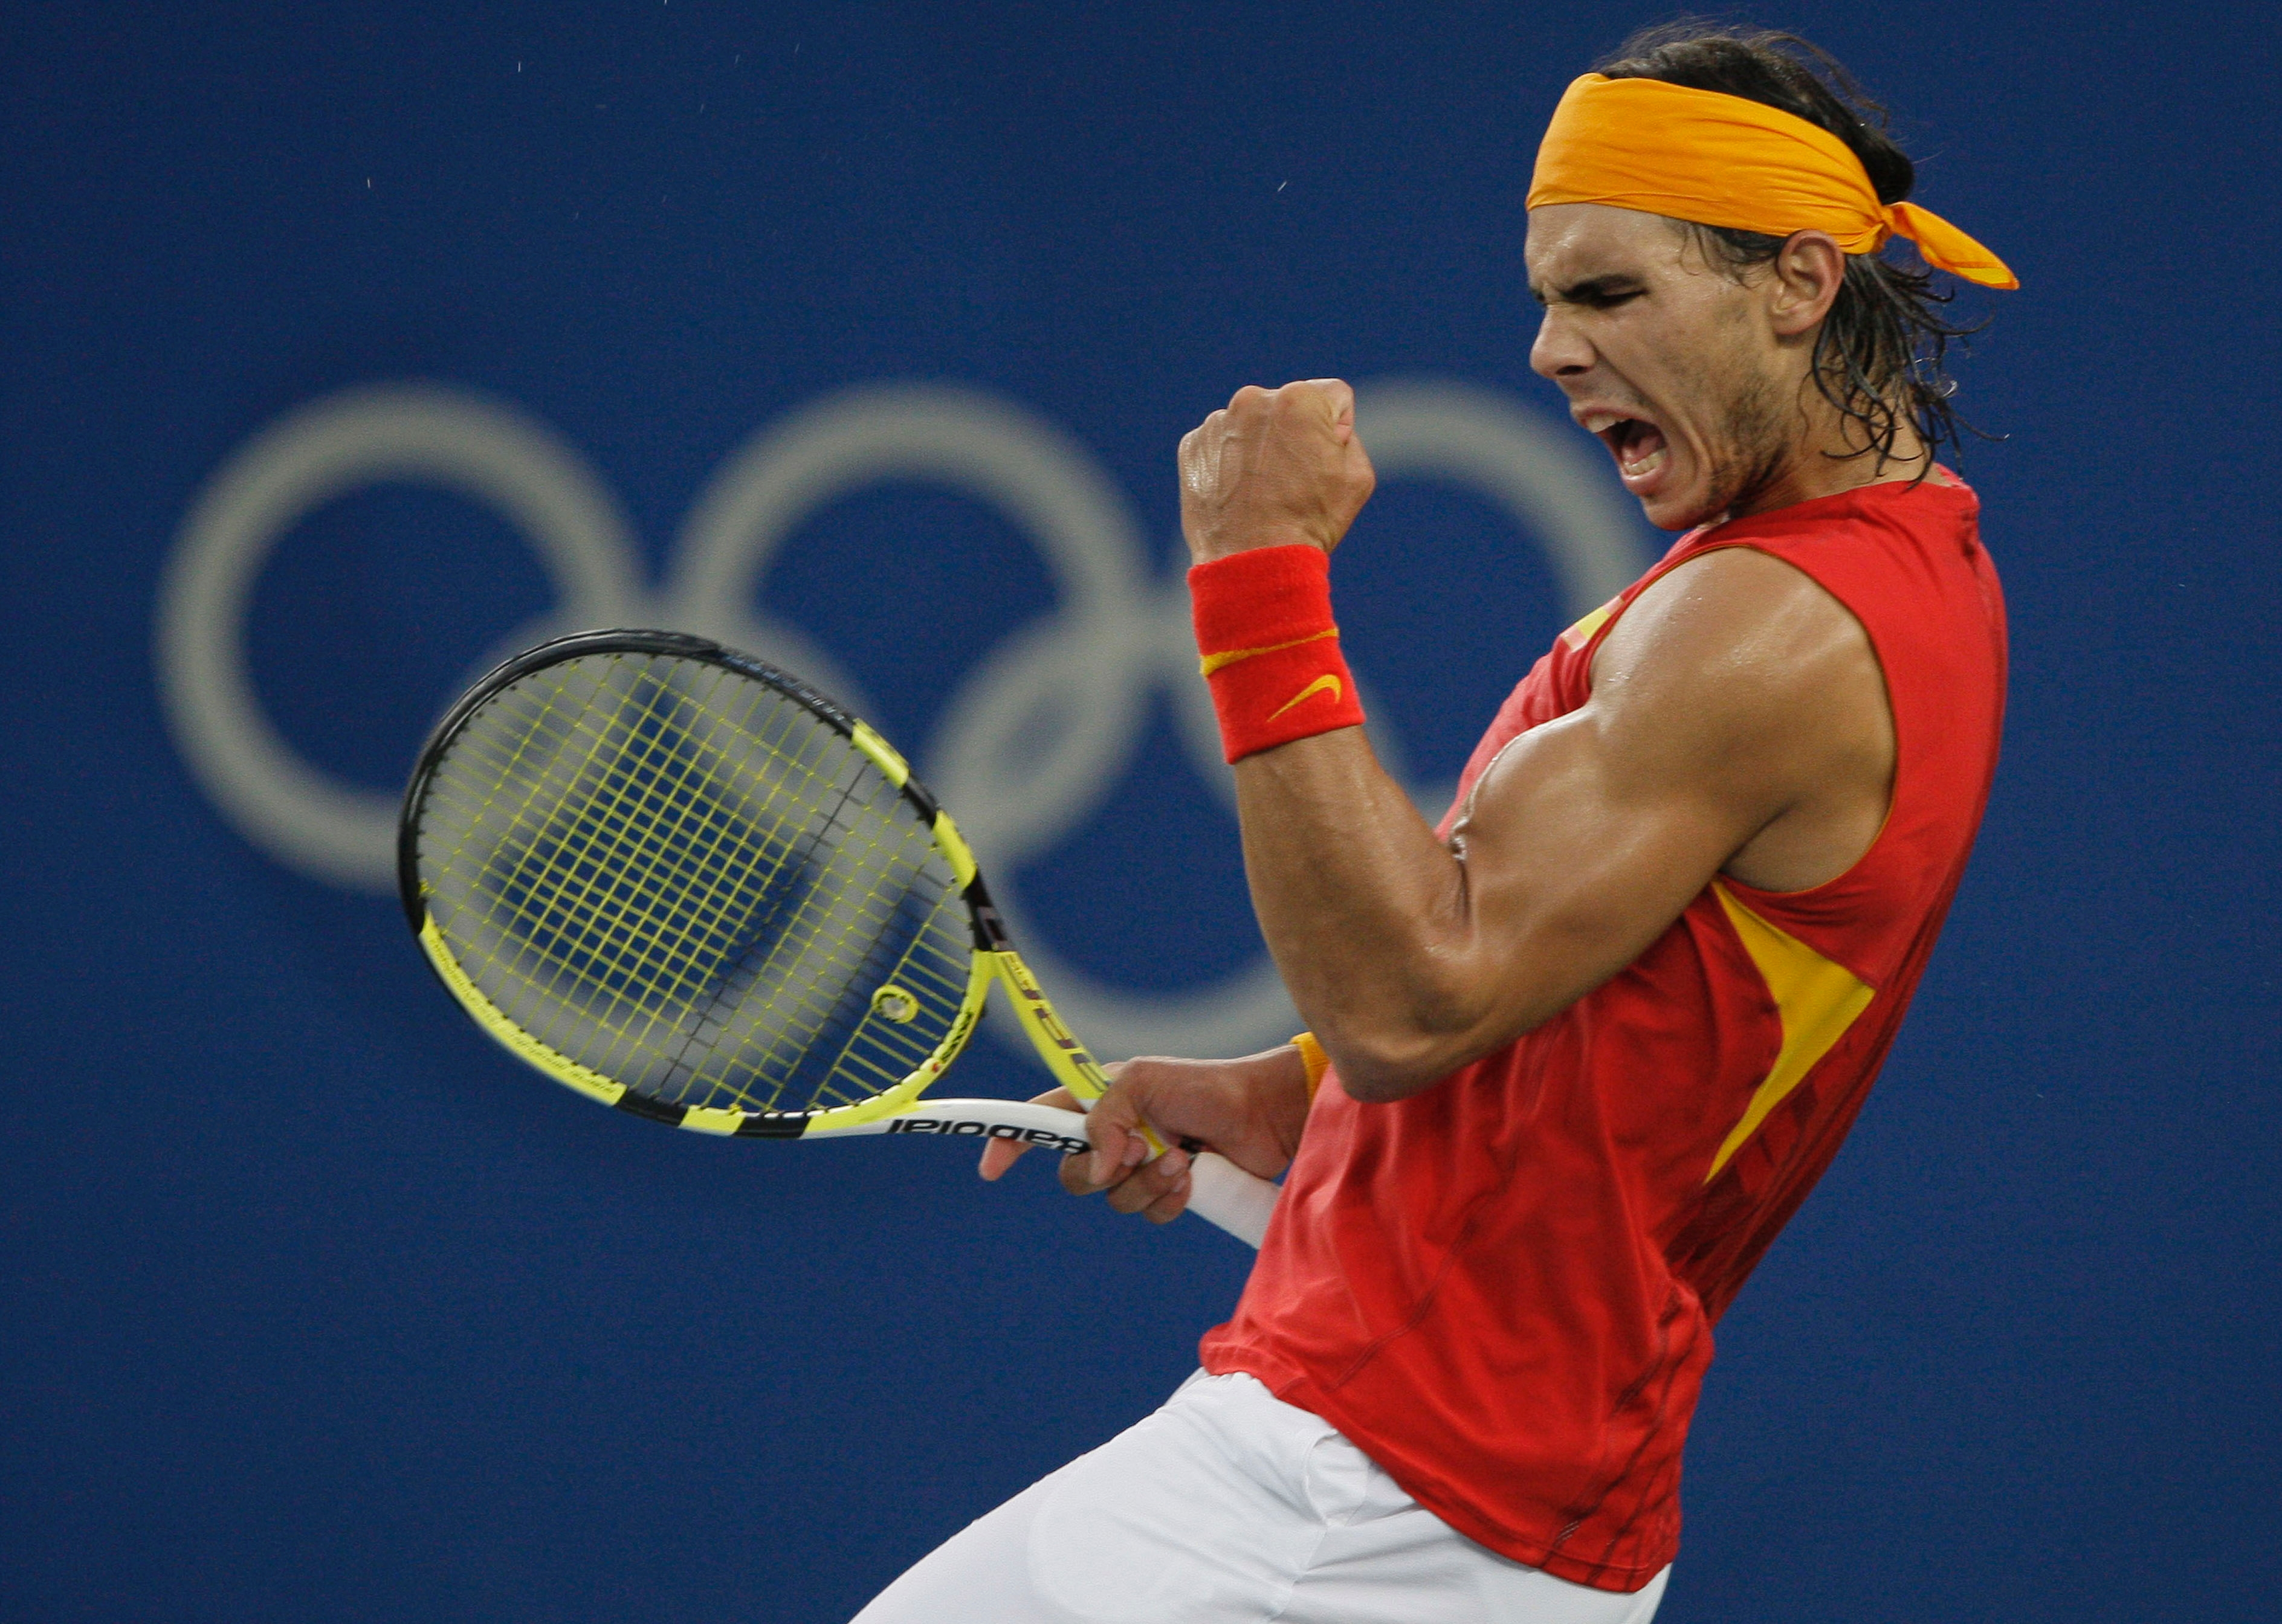 rafael-nadal-sleeveless-shirts-7.jpg